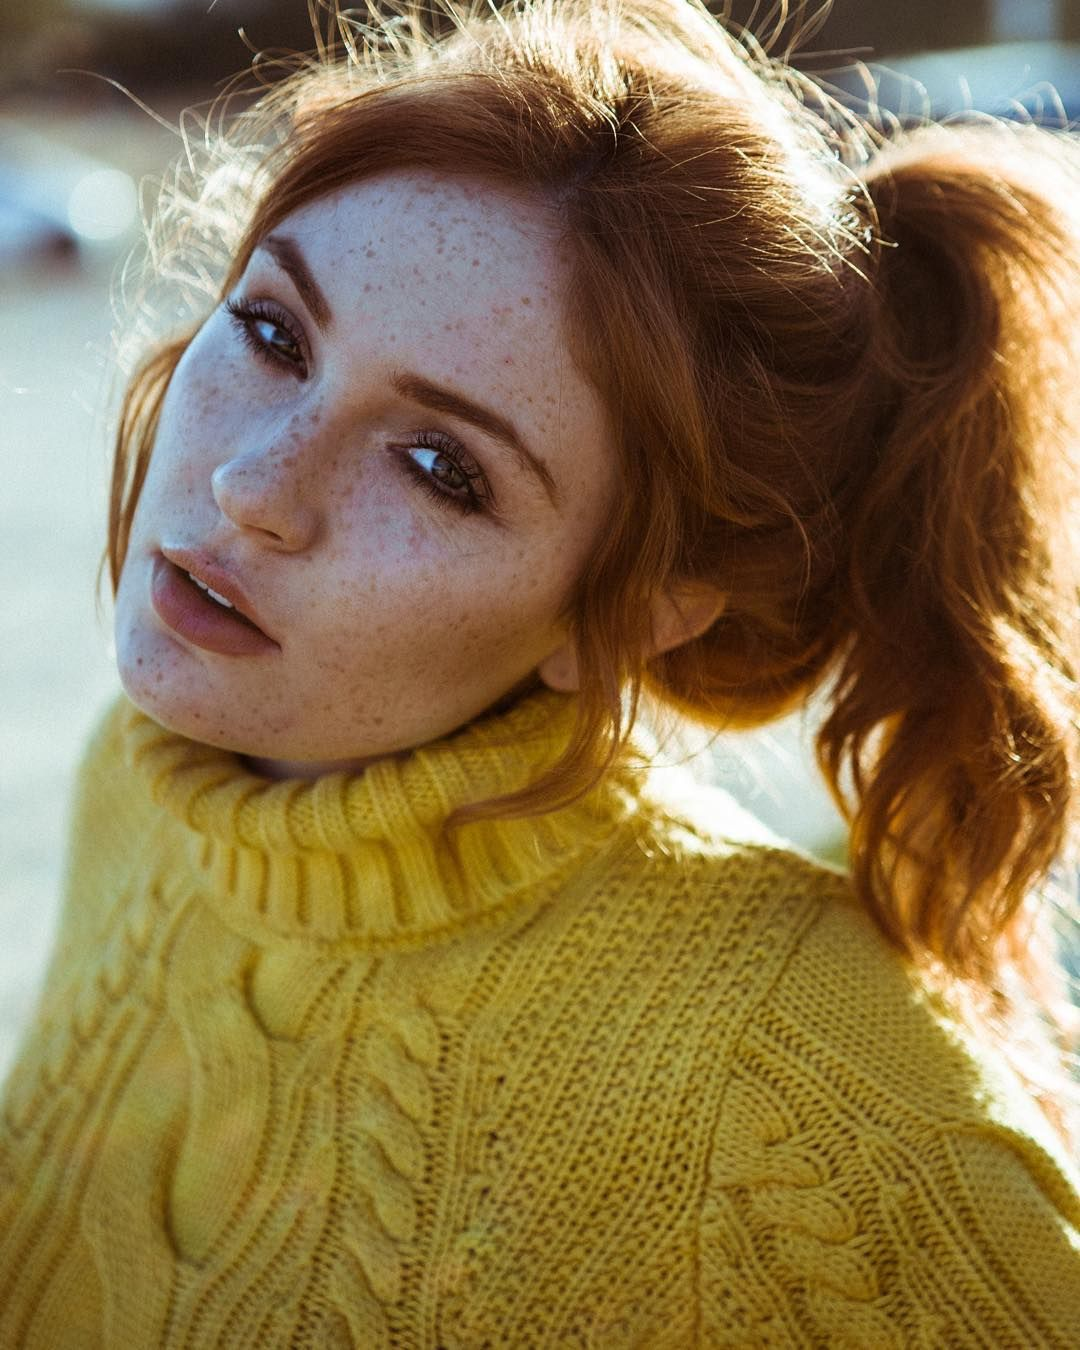 Freckle face photo by kennethjmitchellud woman crush wednesday